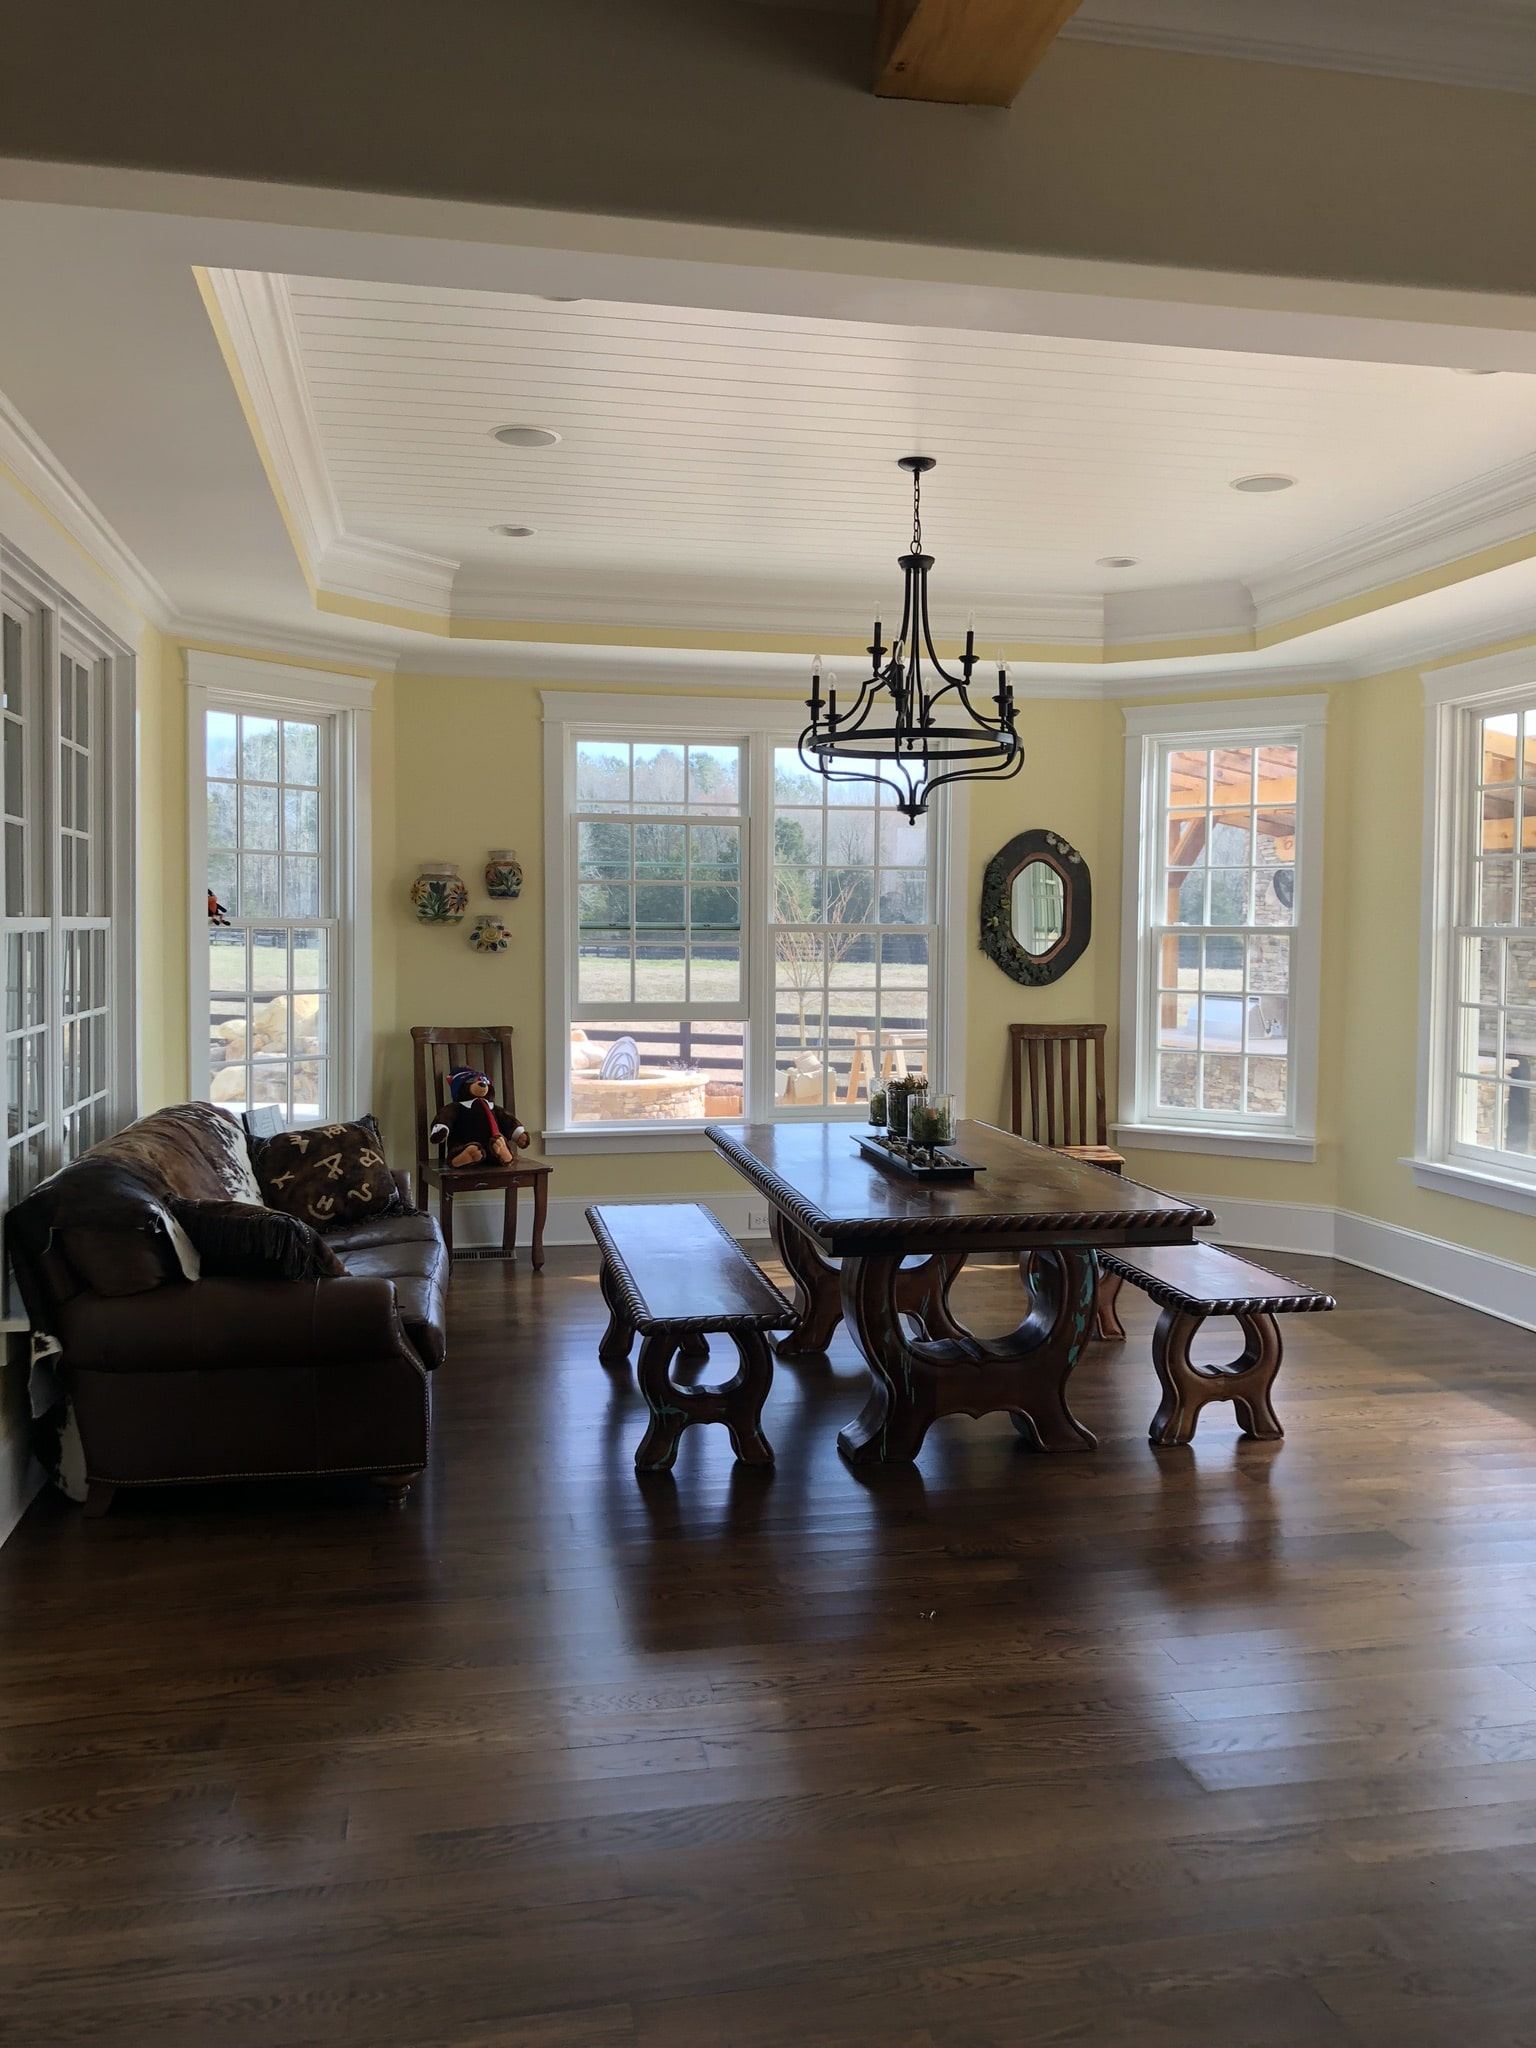 Large casual dining space off the kitchen.